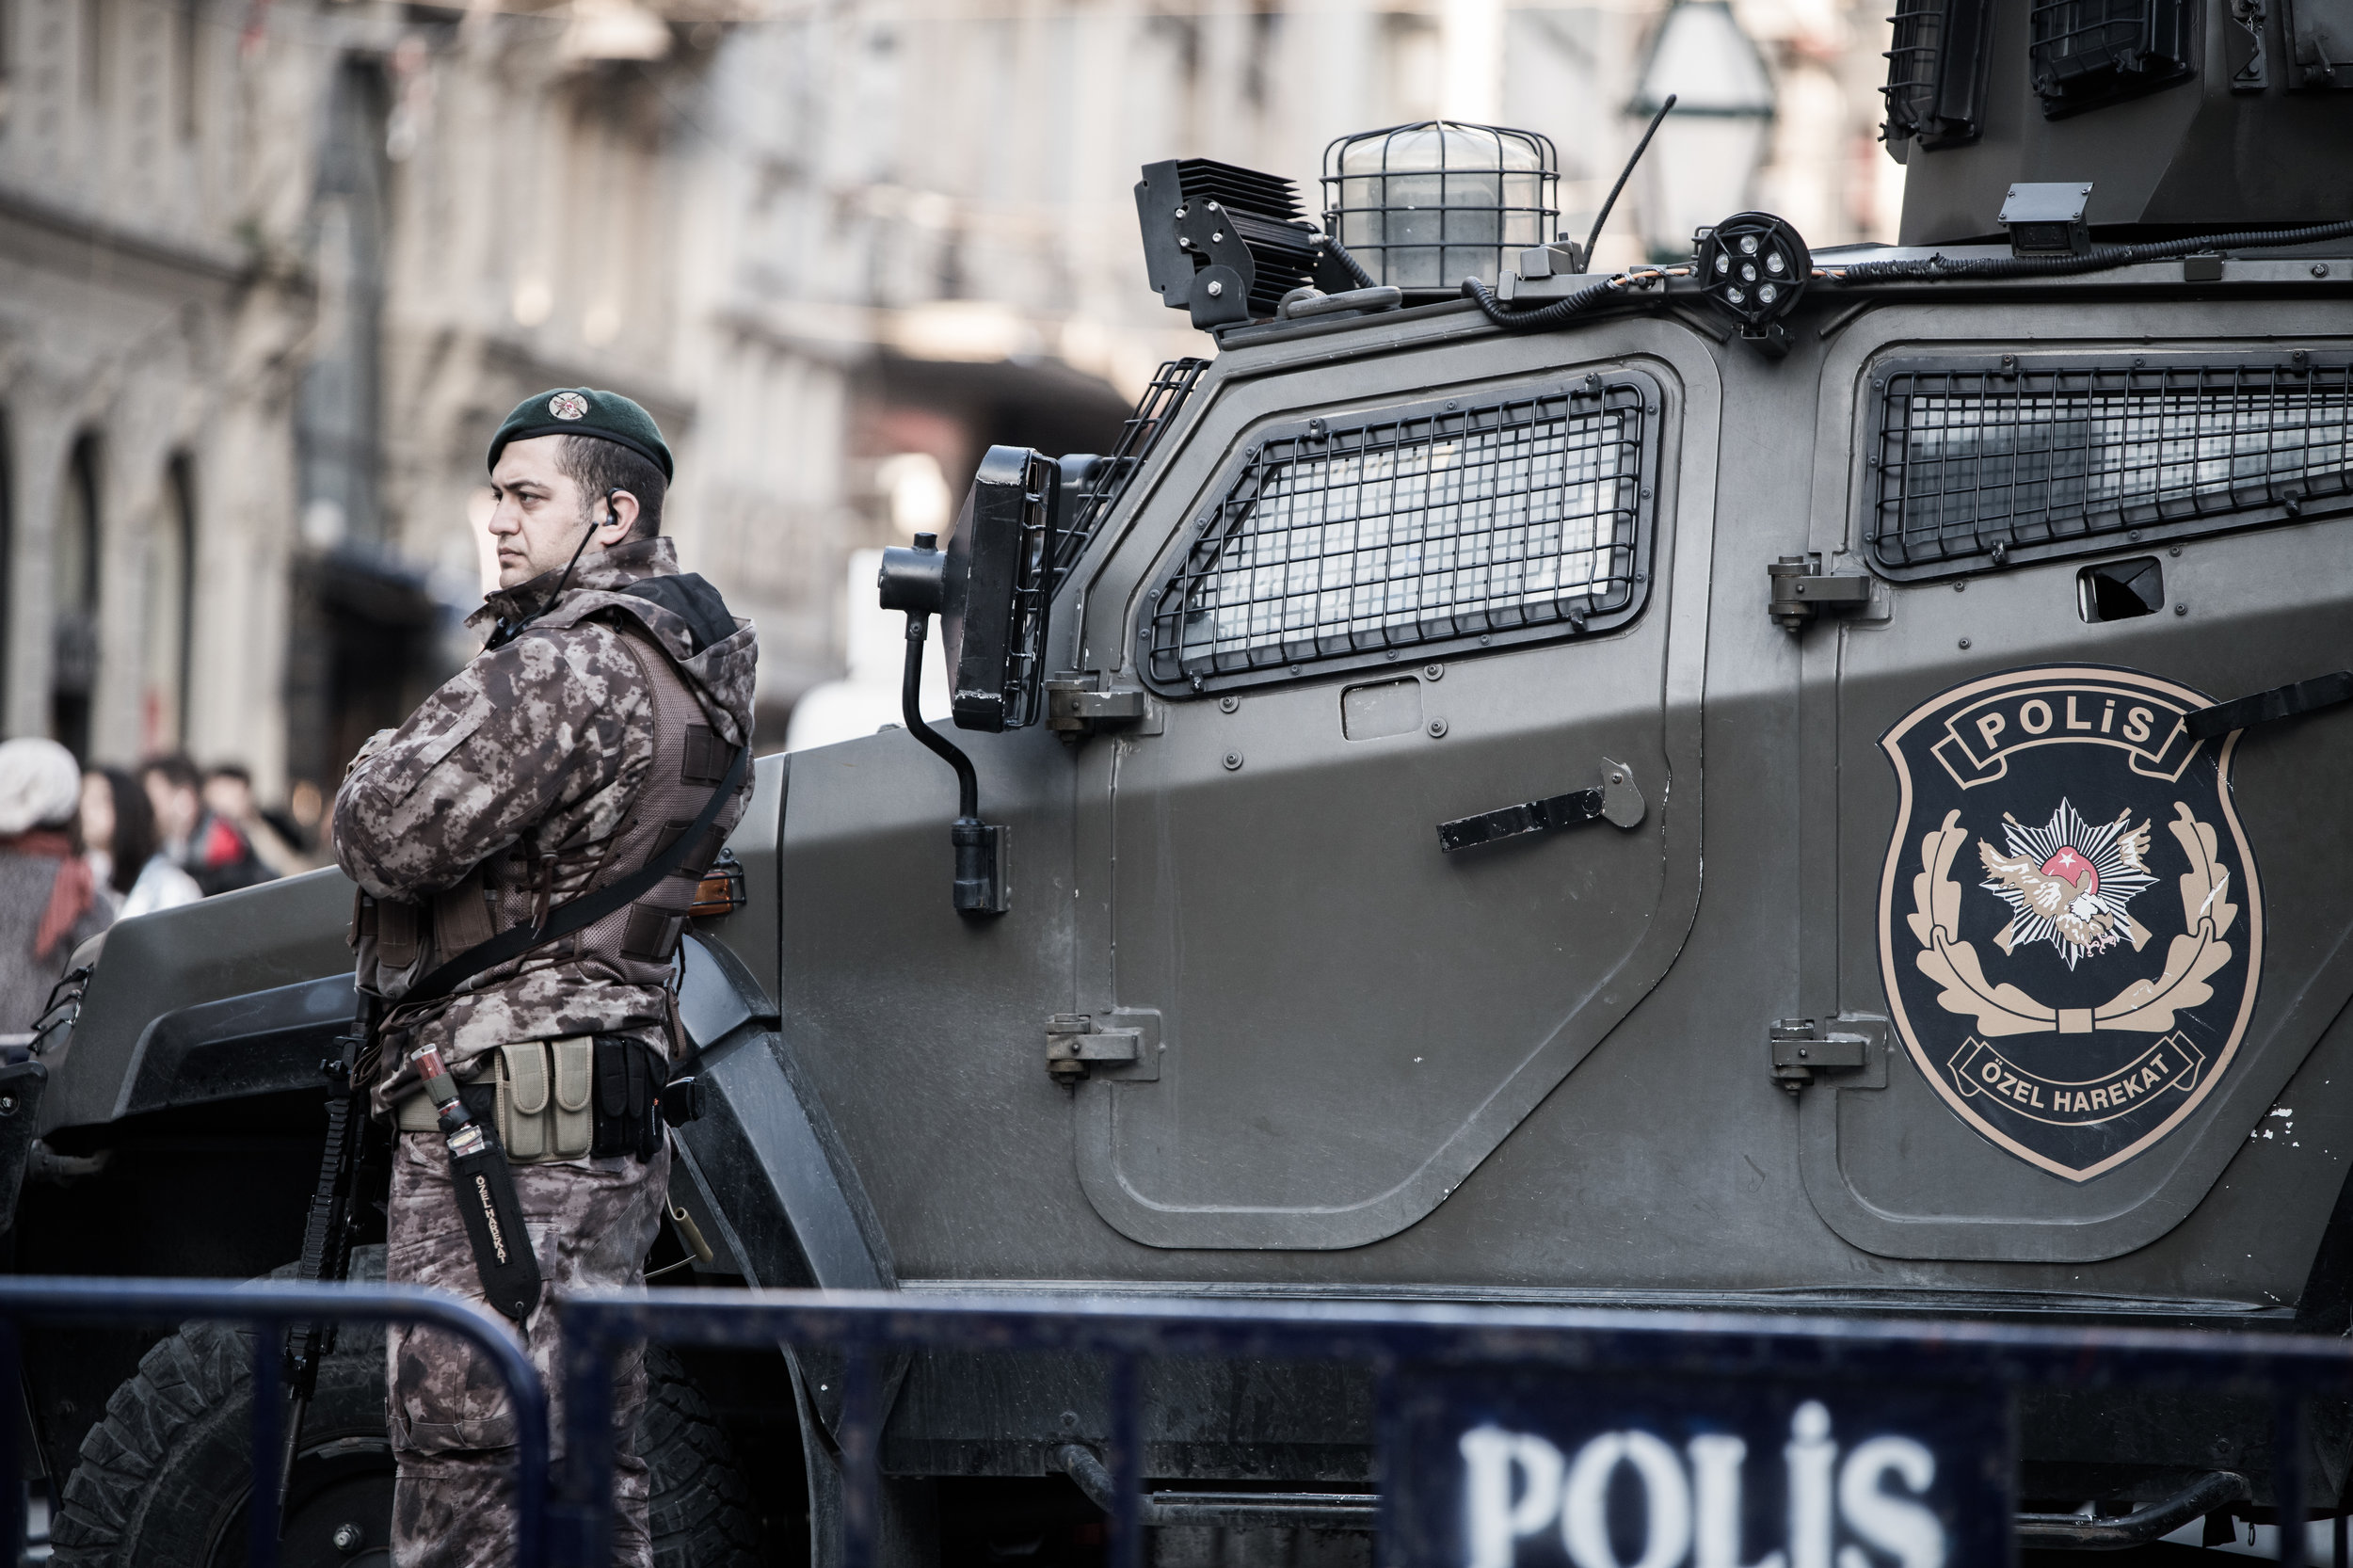 A Turkish security officer standing next to an armoured vehicle keeping a watchful eye in Istiklal Street